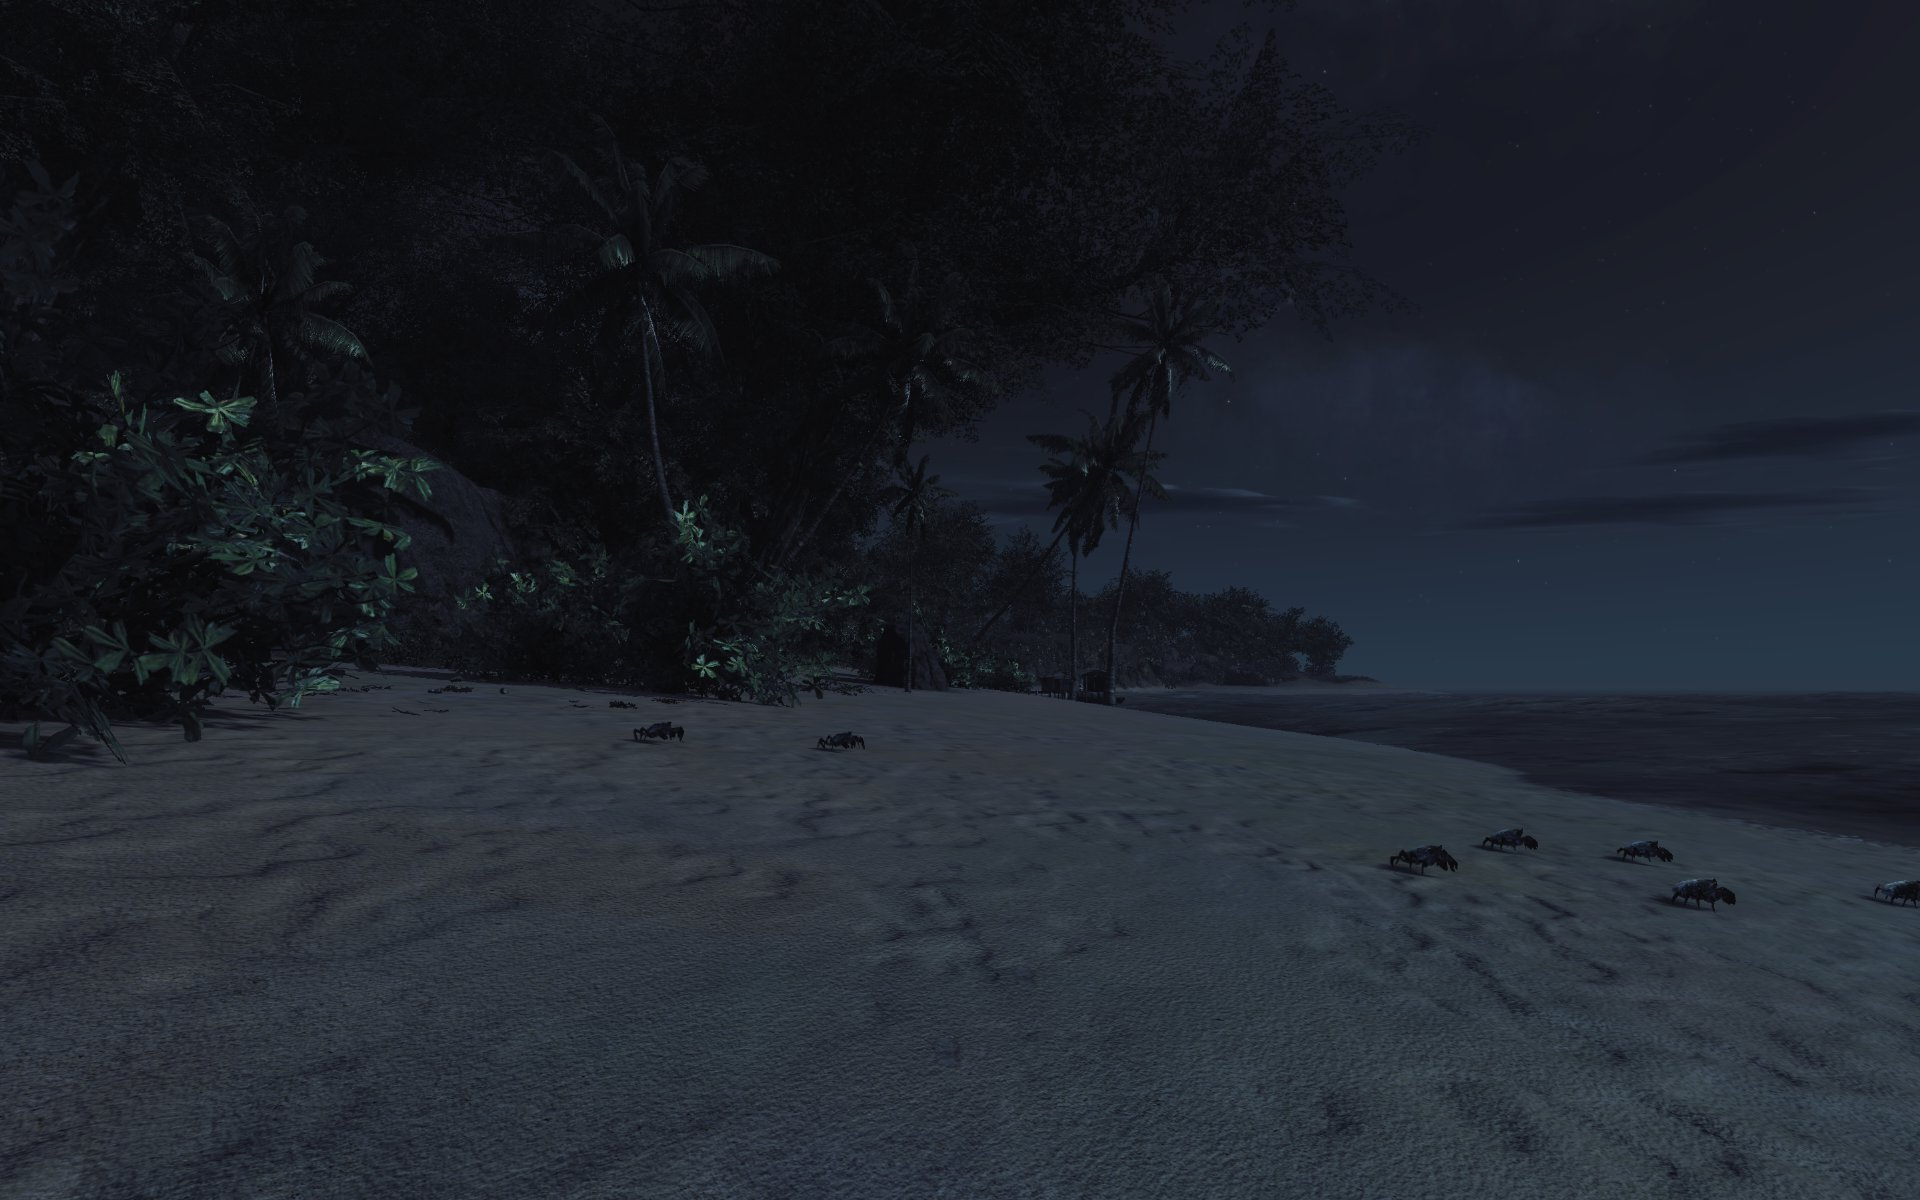 Beach at night b